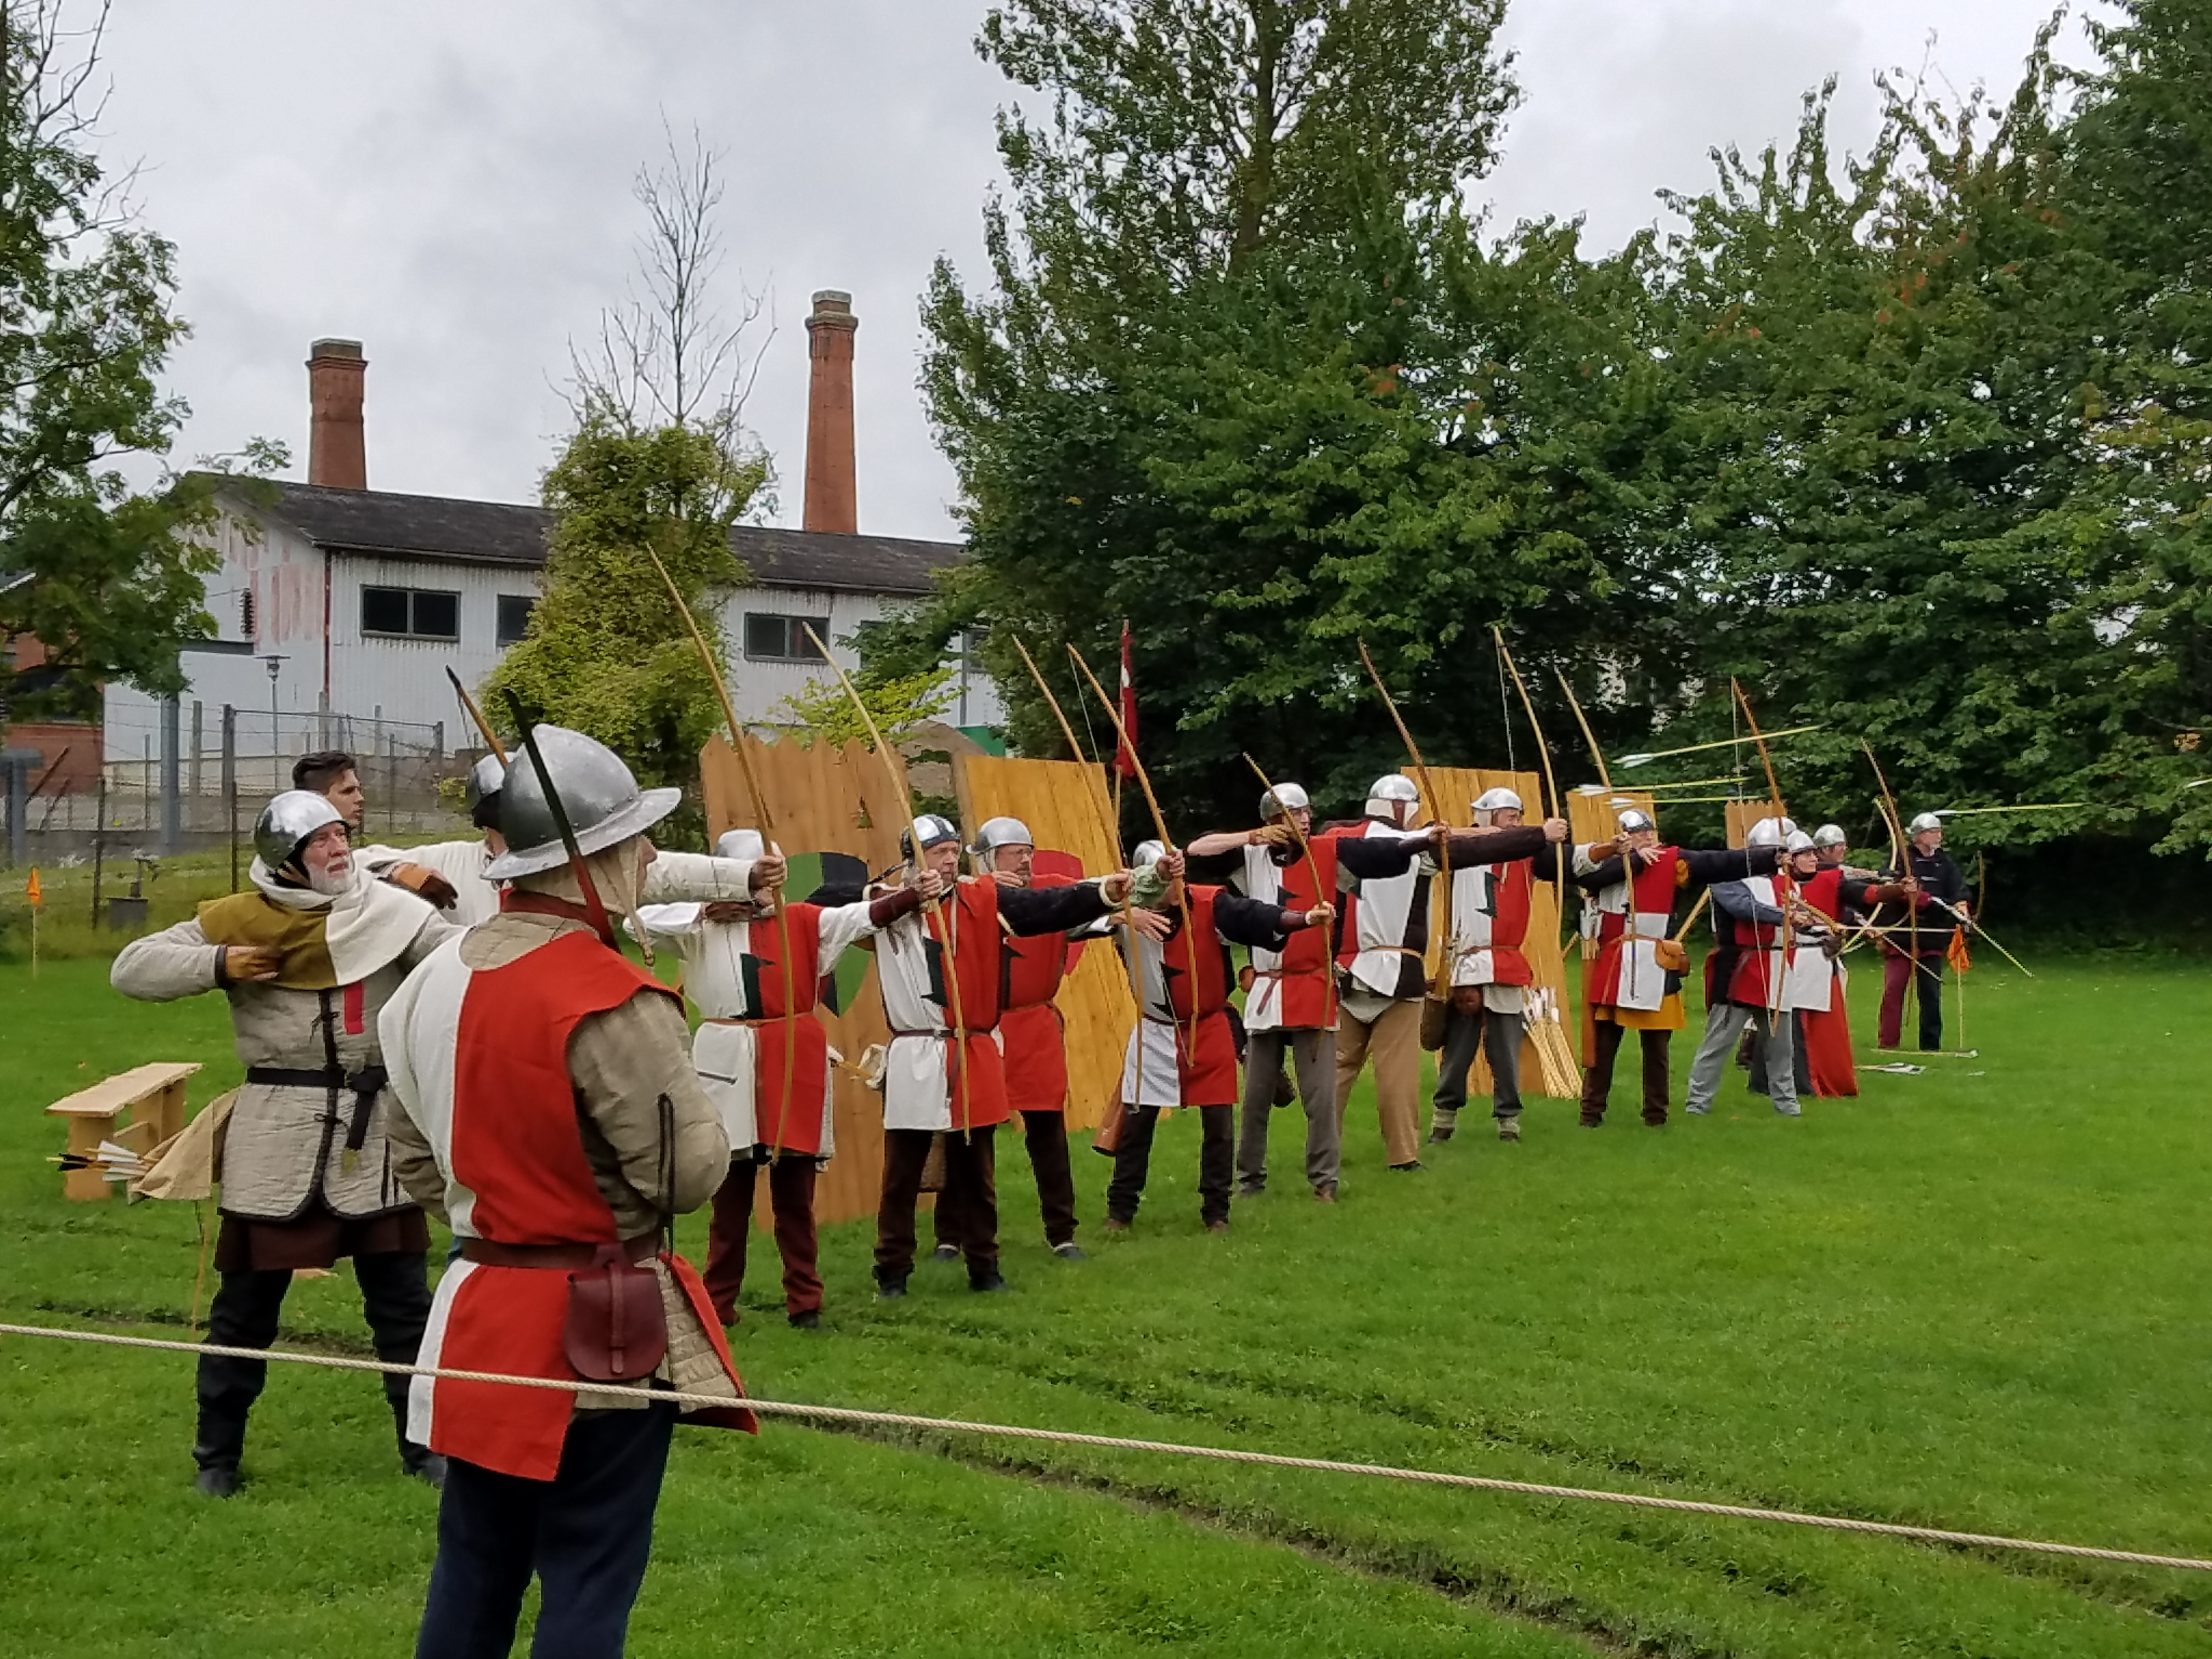 Nyborg medieval weekend with archers